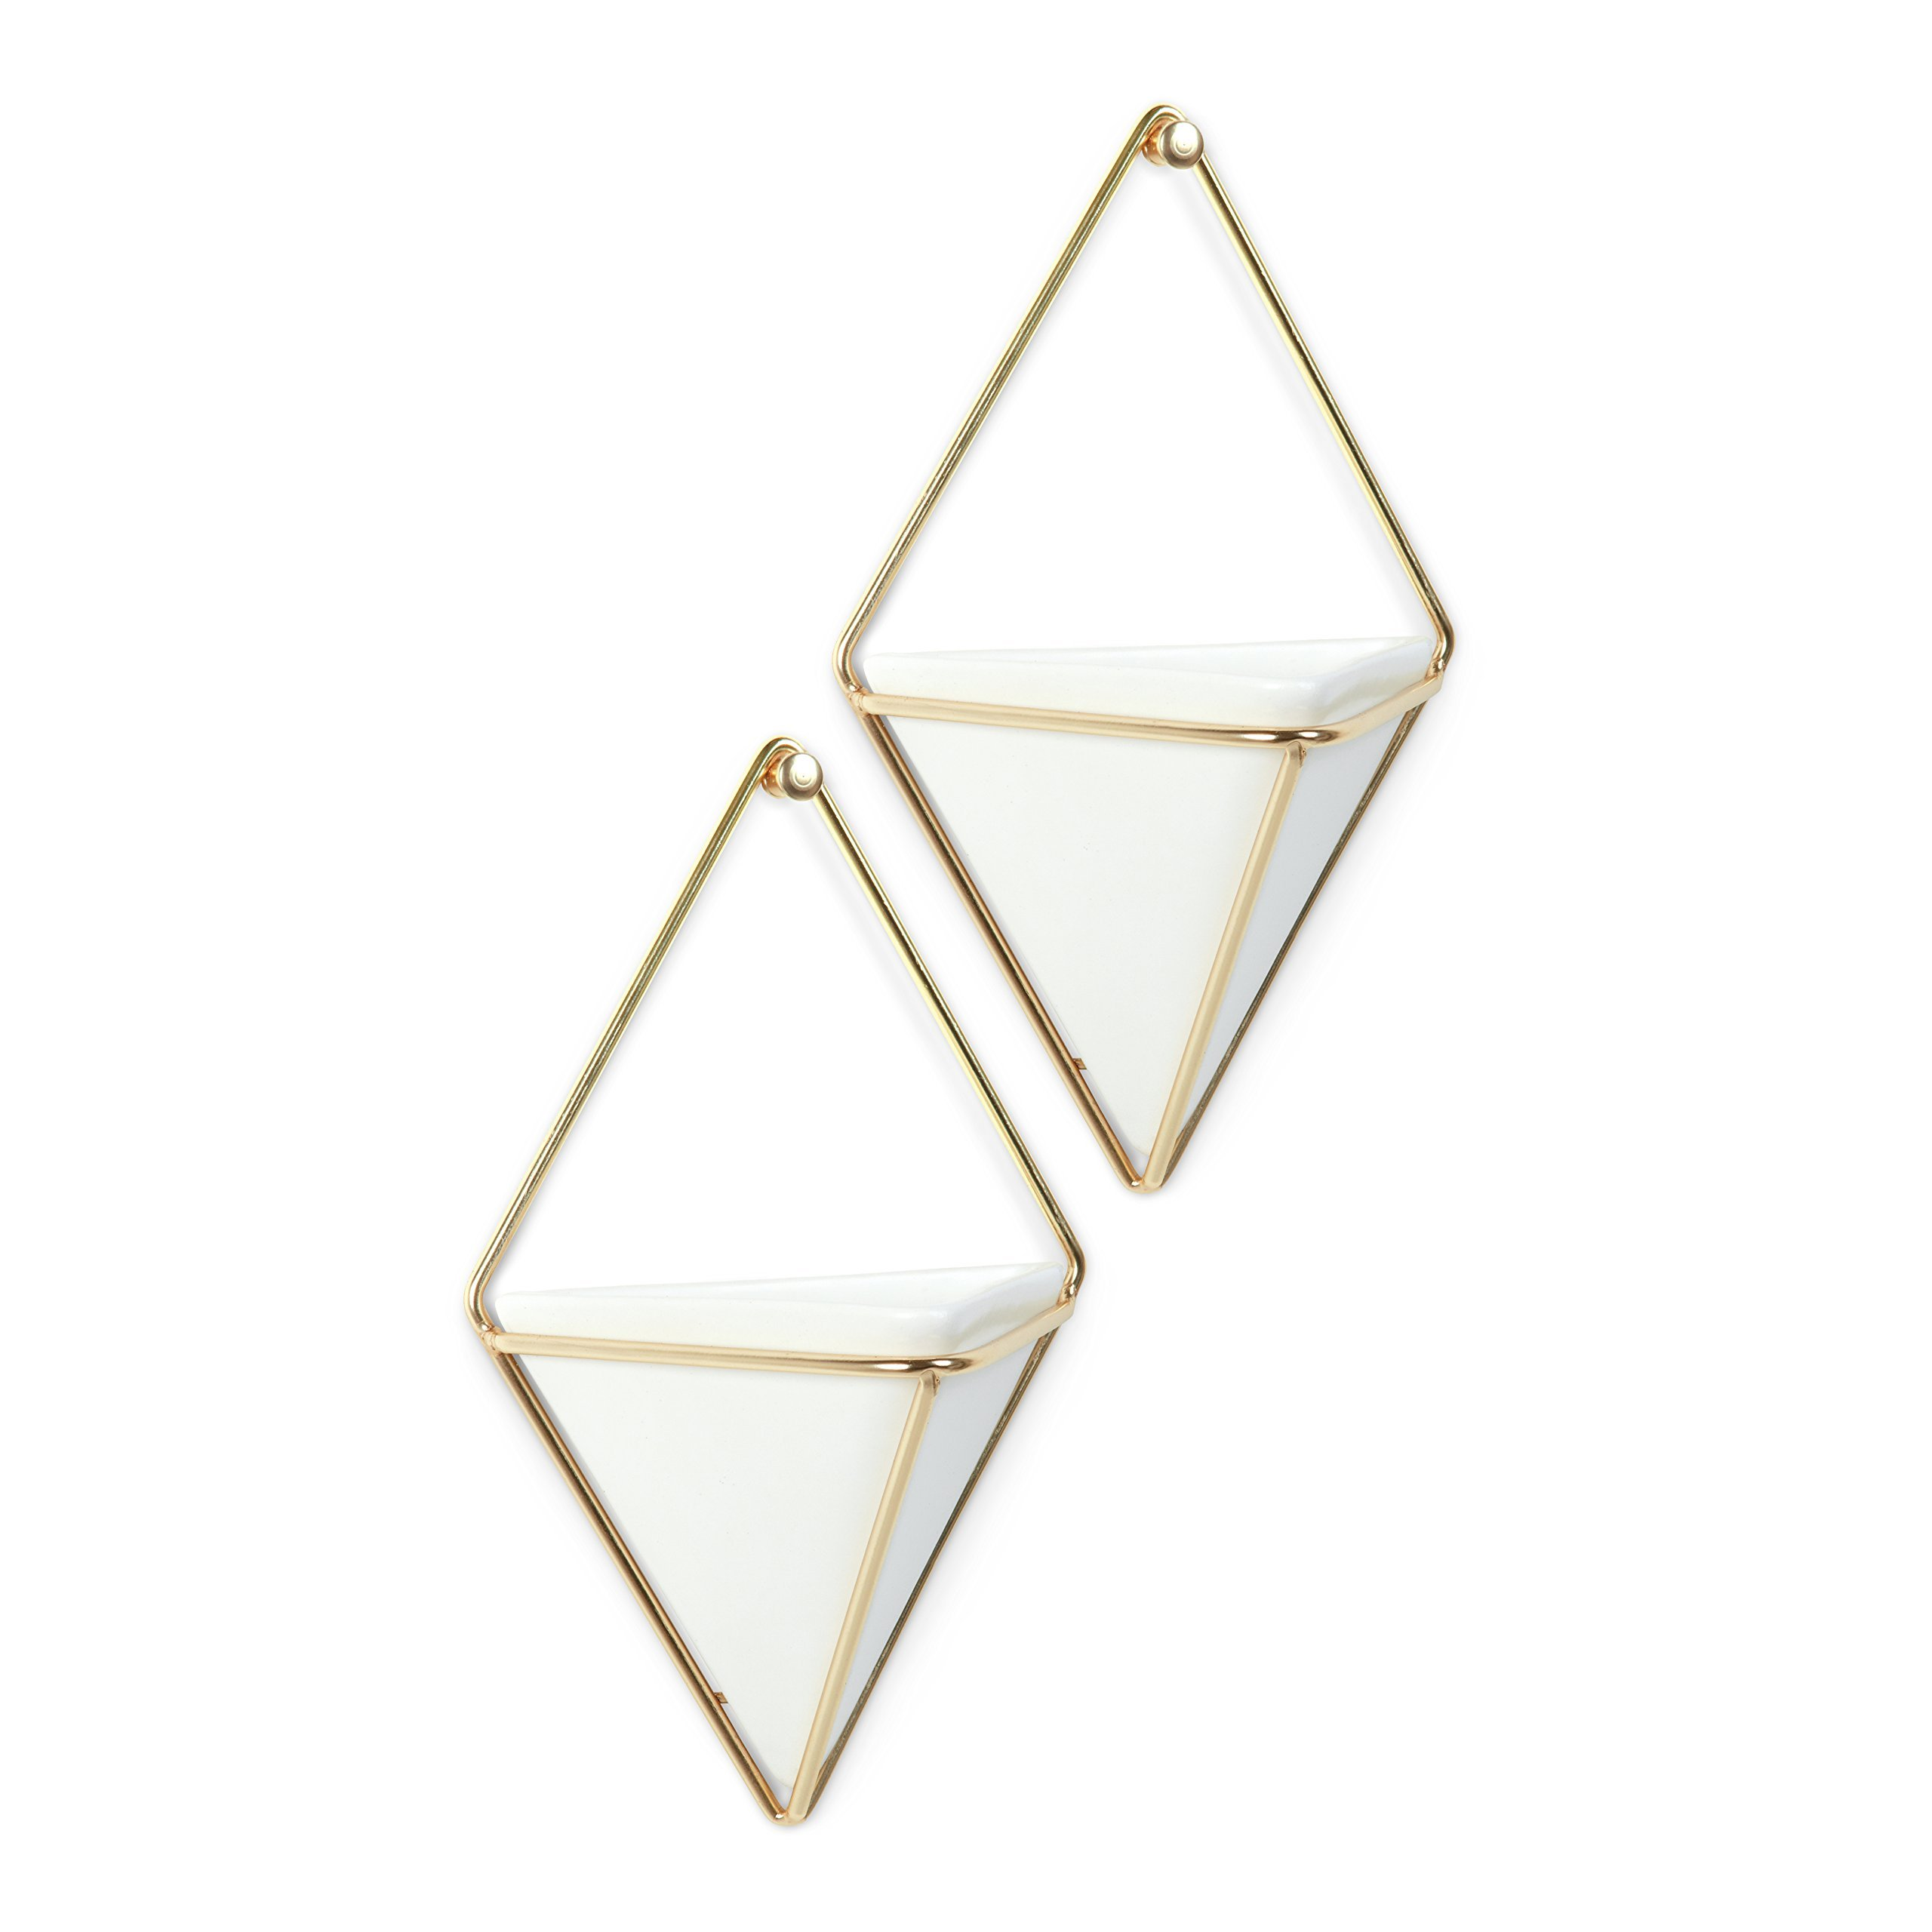 Umbra Trigg Hanging Planter Vase & Geometric Wall Decor Container - Great for Succulent Plants, Air Plant, Mini Cactus, Faux Plants and More, White Ceramic/Brass (Set of 2) by Umbra